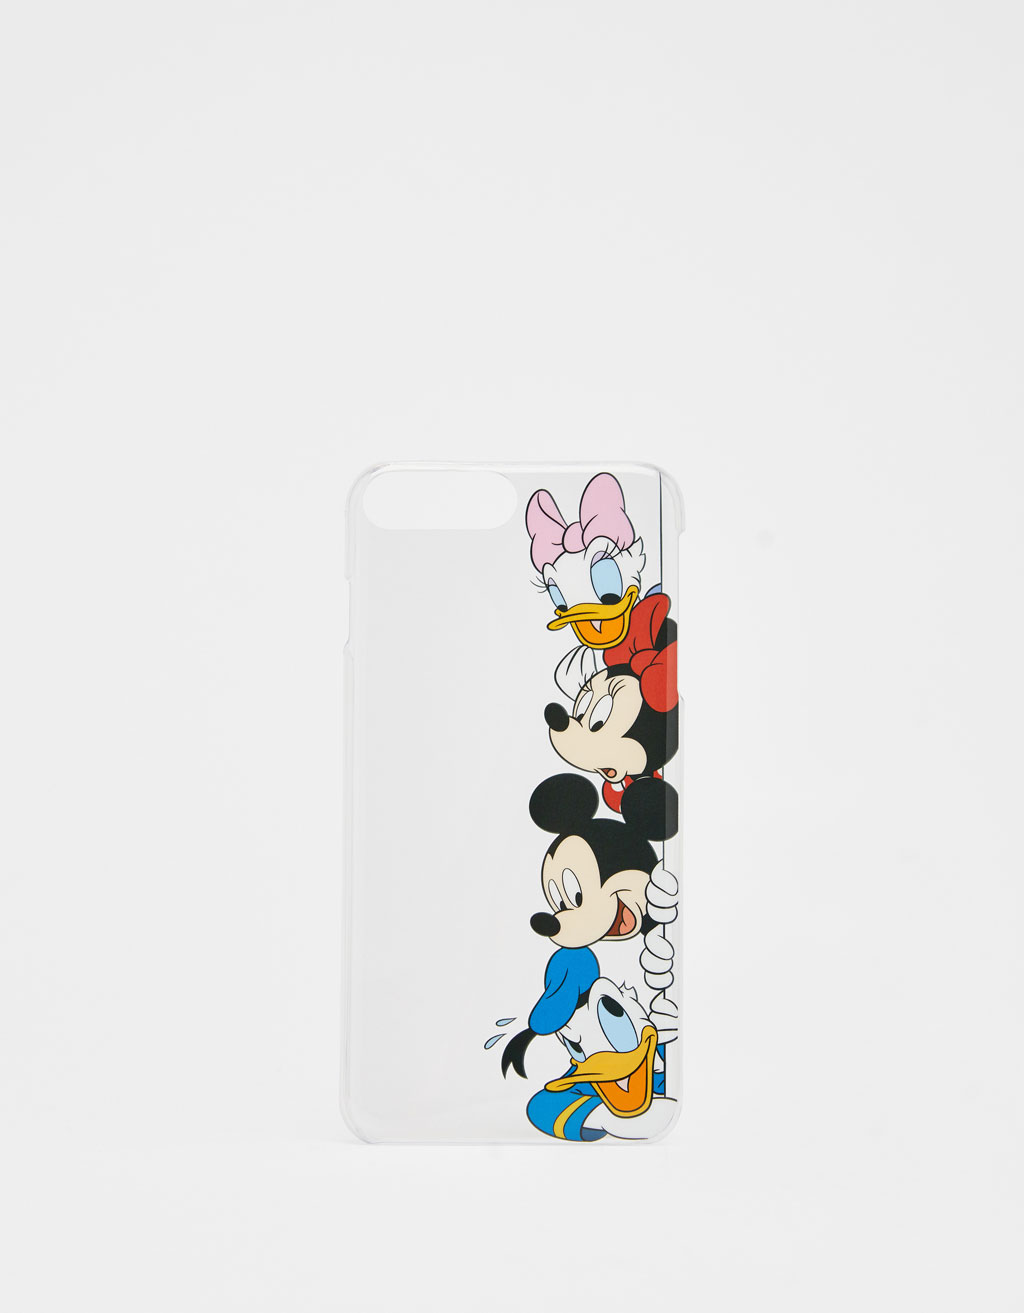 Handyhülle Disney für iPhone 6 plus / 7 plus / 8 plus